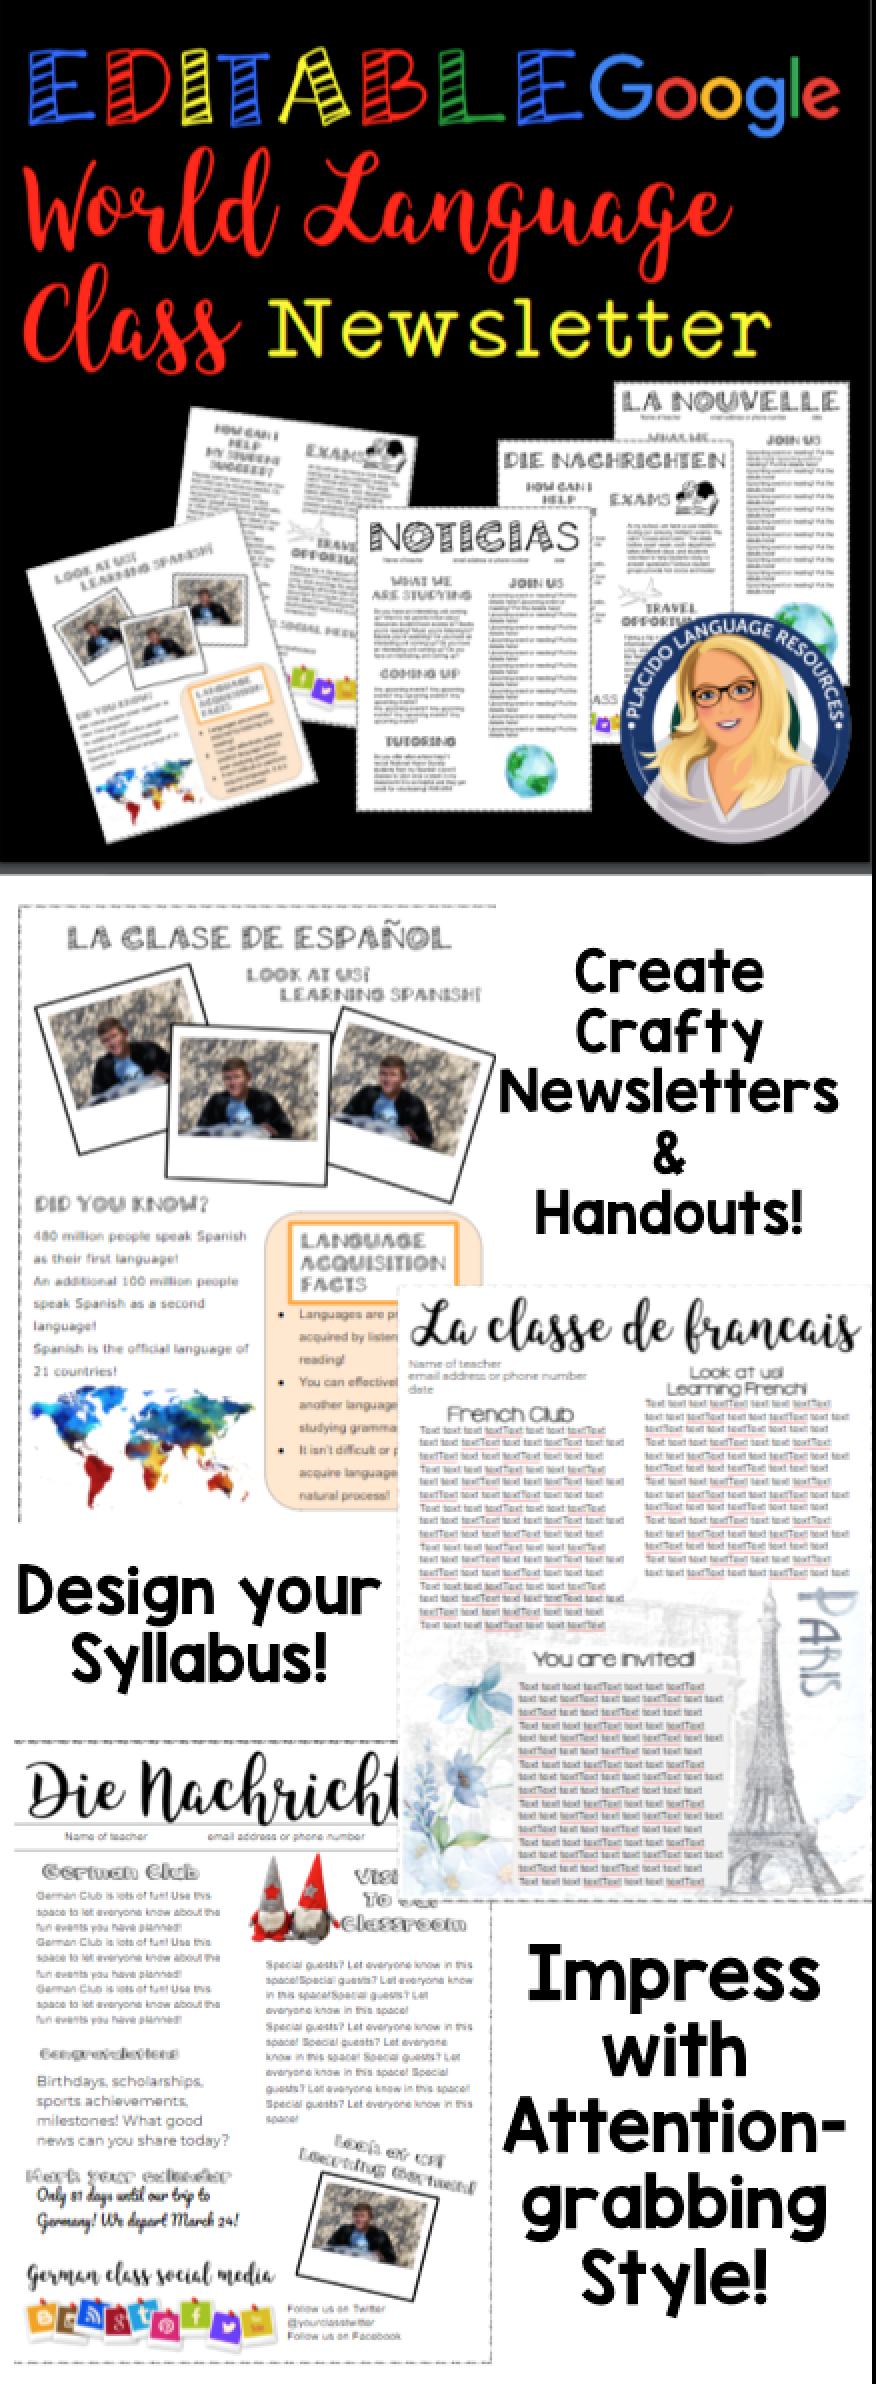 c1549c3a6ce9fb1849bd49d19e4c4a51 Newsletter Templates Free Spanish Cl on